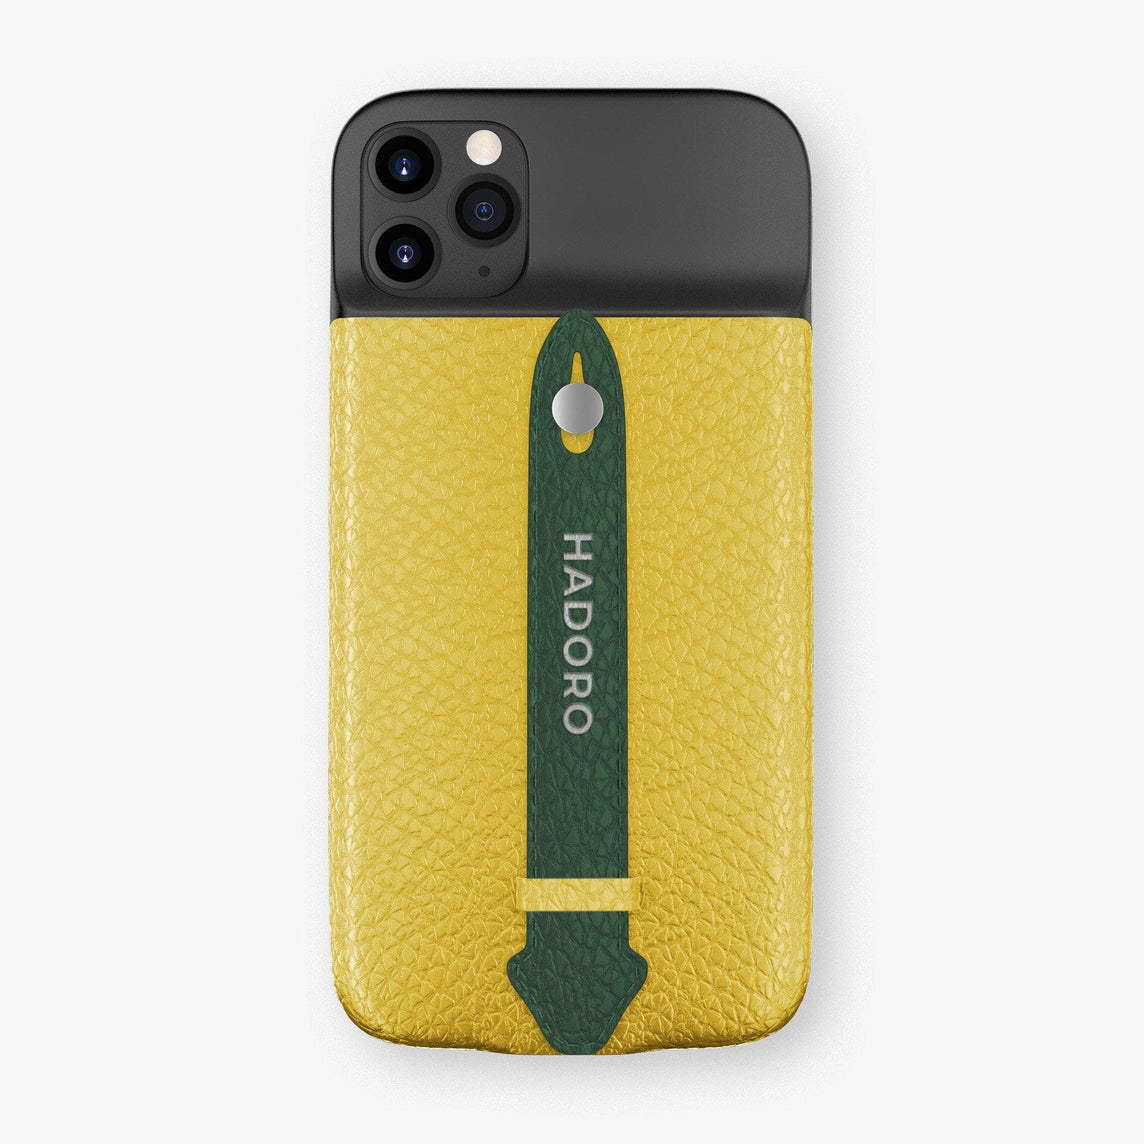 Calfskin Battery Finger Case for iPhone 11 Pro Max | Yellow/Green - Stainless Steel without-personalization